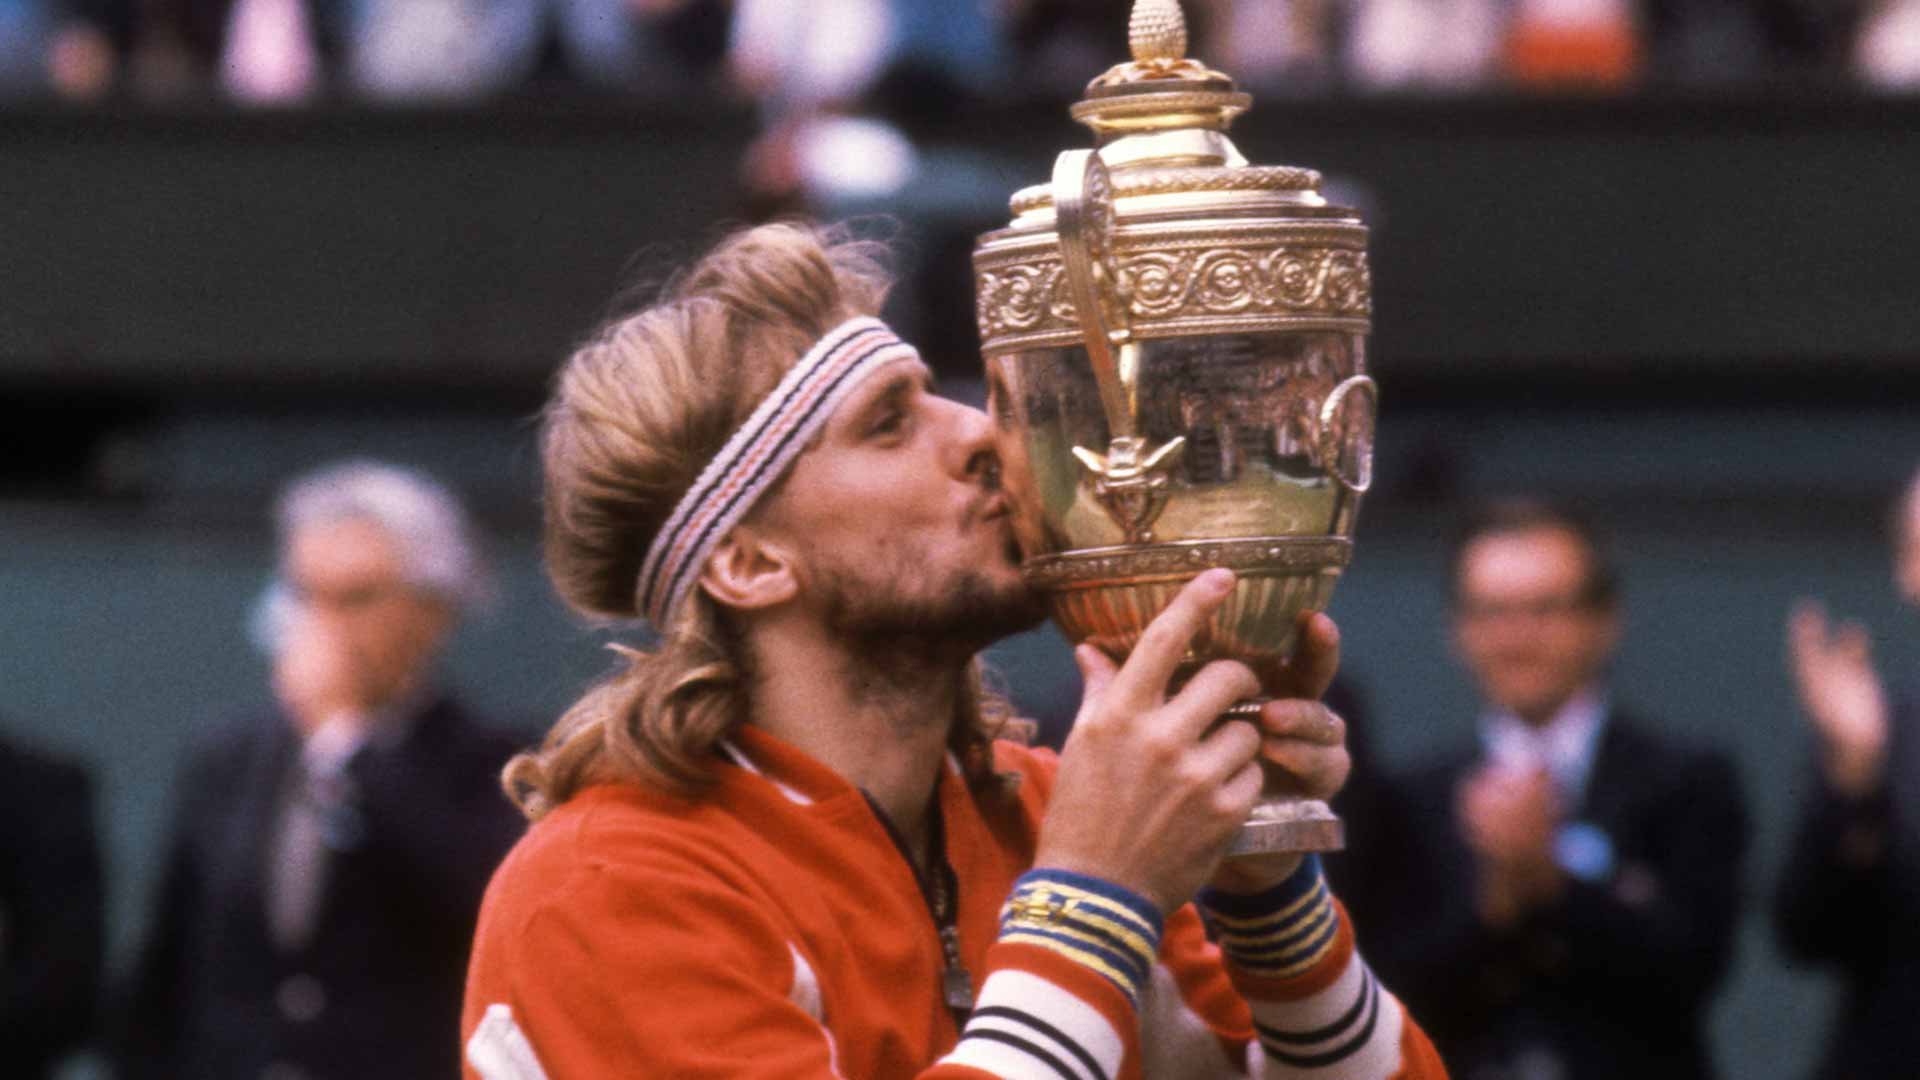 Victoire de Bjorn Borg Source: ATP World Tour